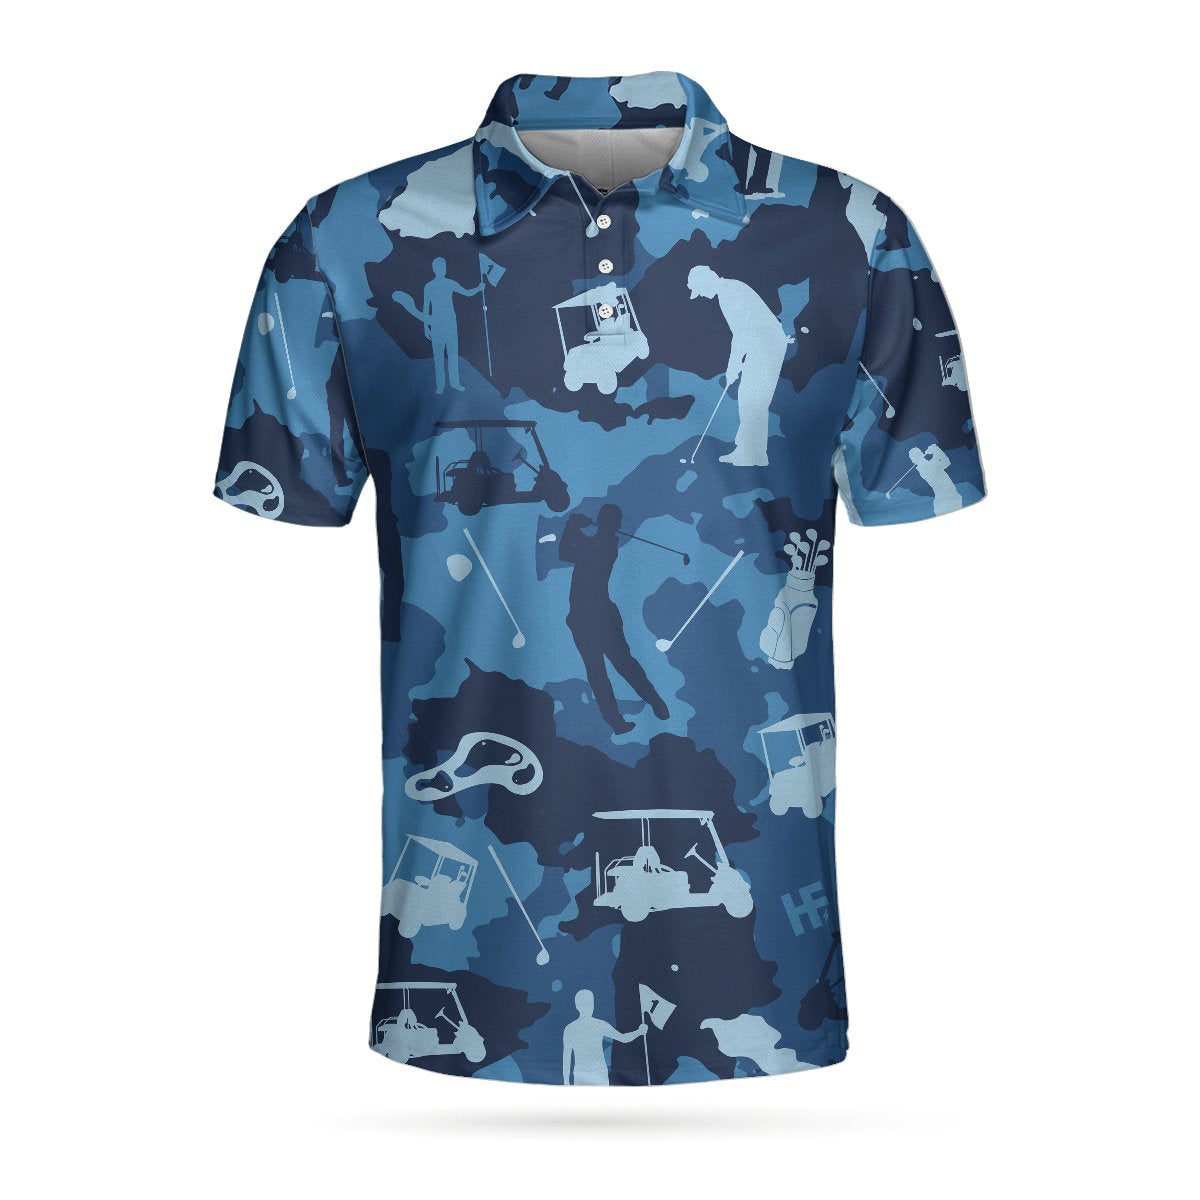 Golf Ocean Blue Camouflage EZ20 3103 Polo Shirt